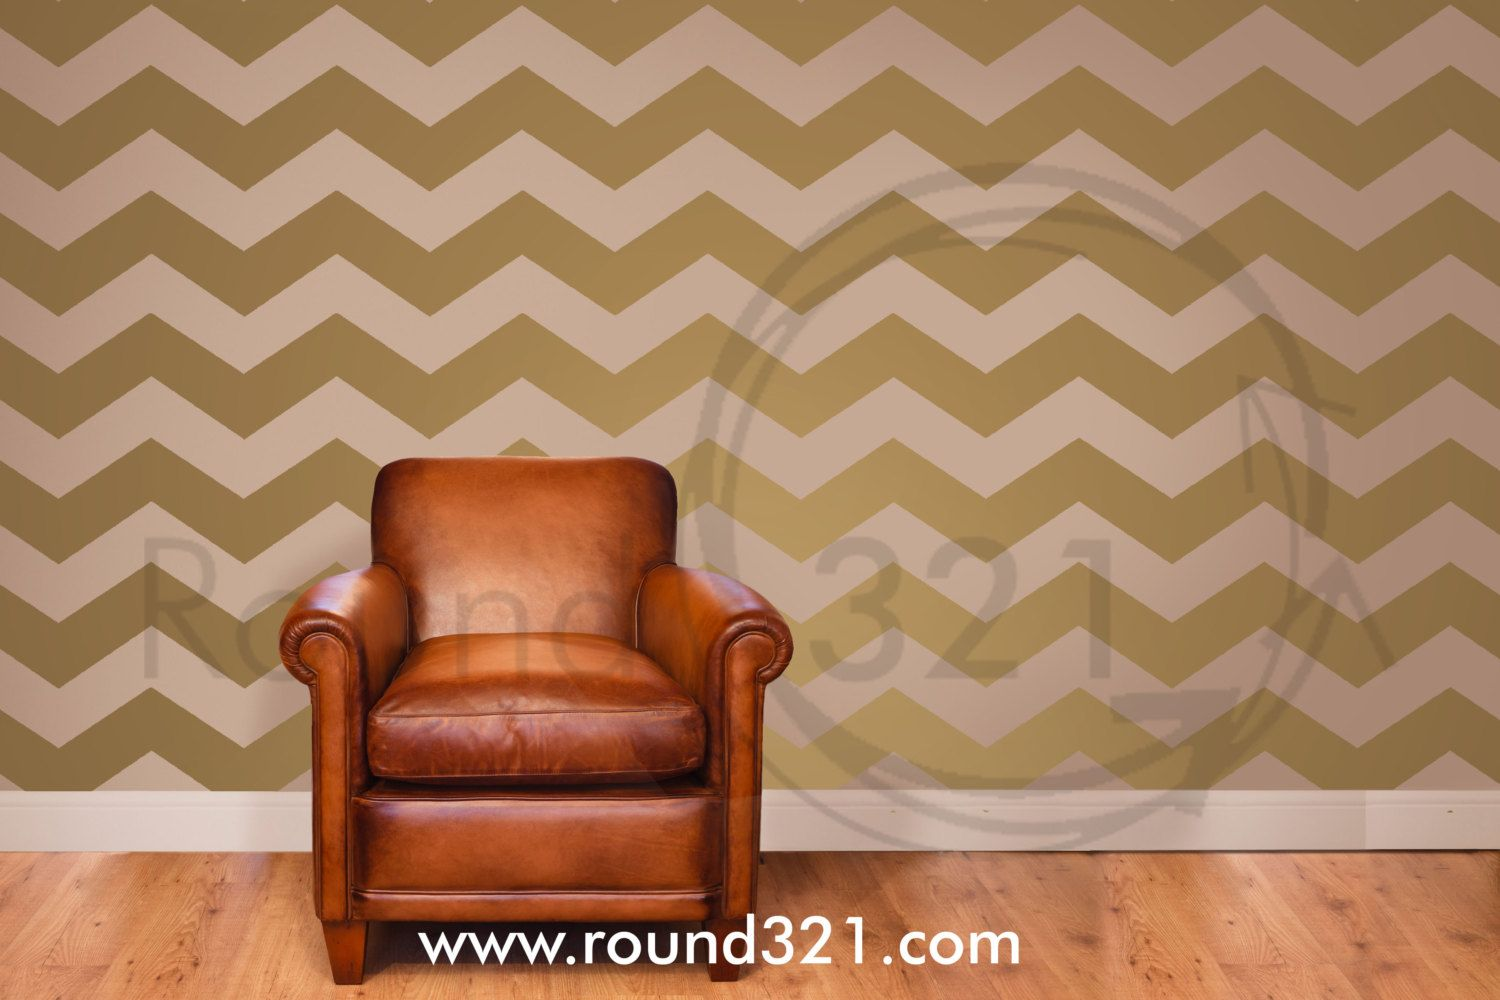 Chevron Print Decor Wall Decal Design For the Home or by Round321.  via Etsy. & Chevron Print Decor Wall Decal Design For the Home or by Round321 ...